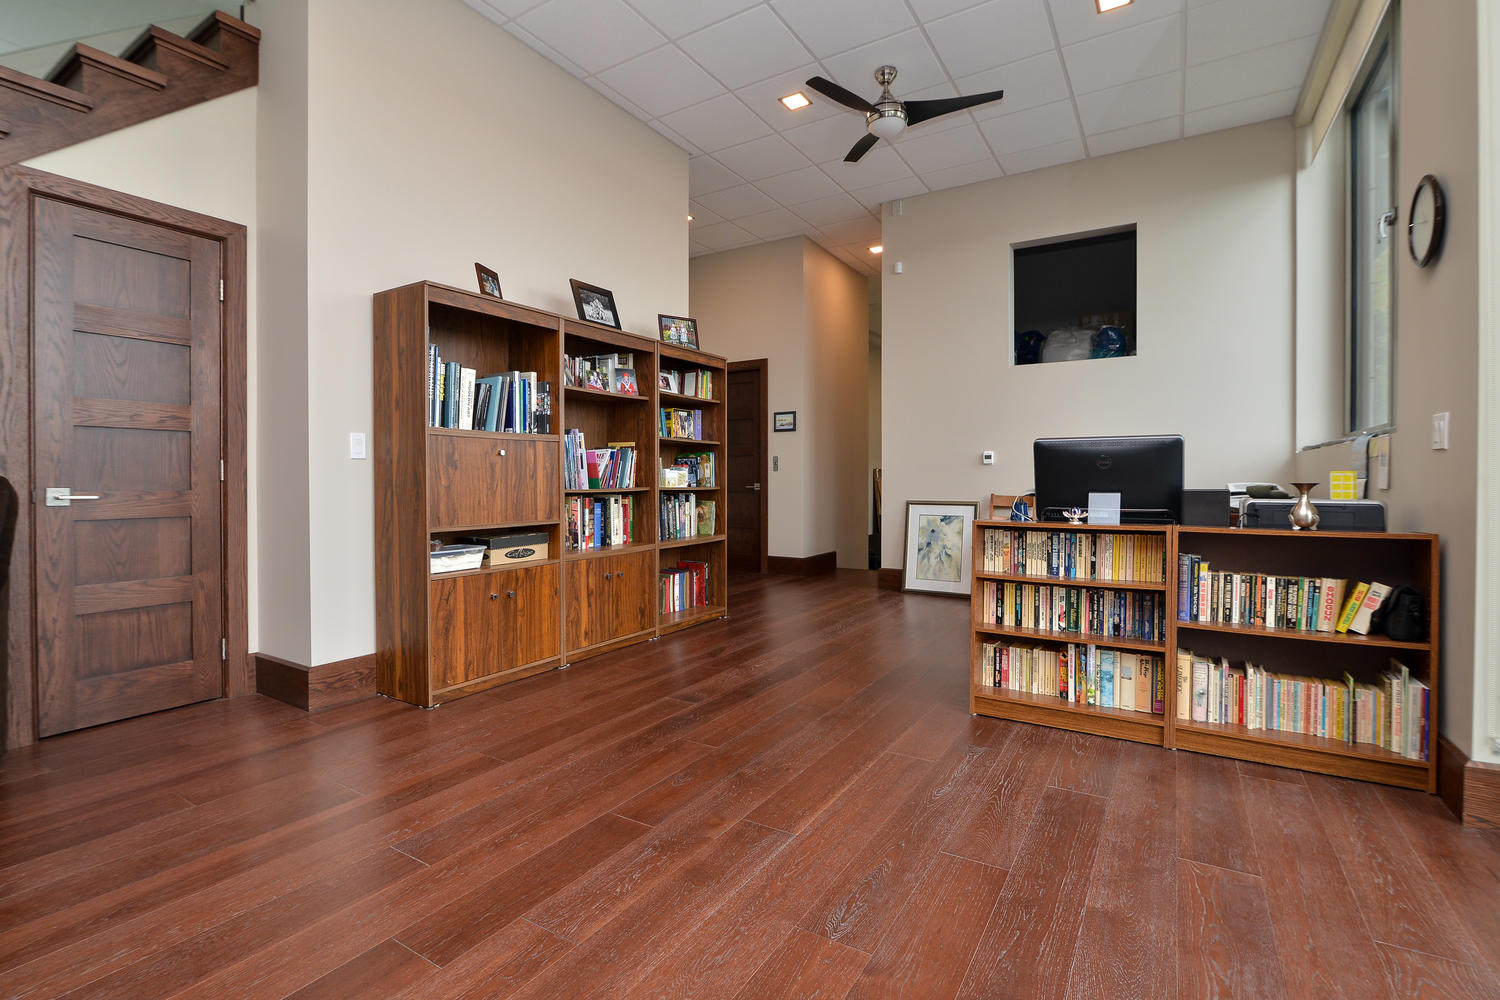 Hickory Wood Flooring in a custom home with wide planks